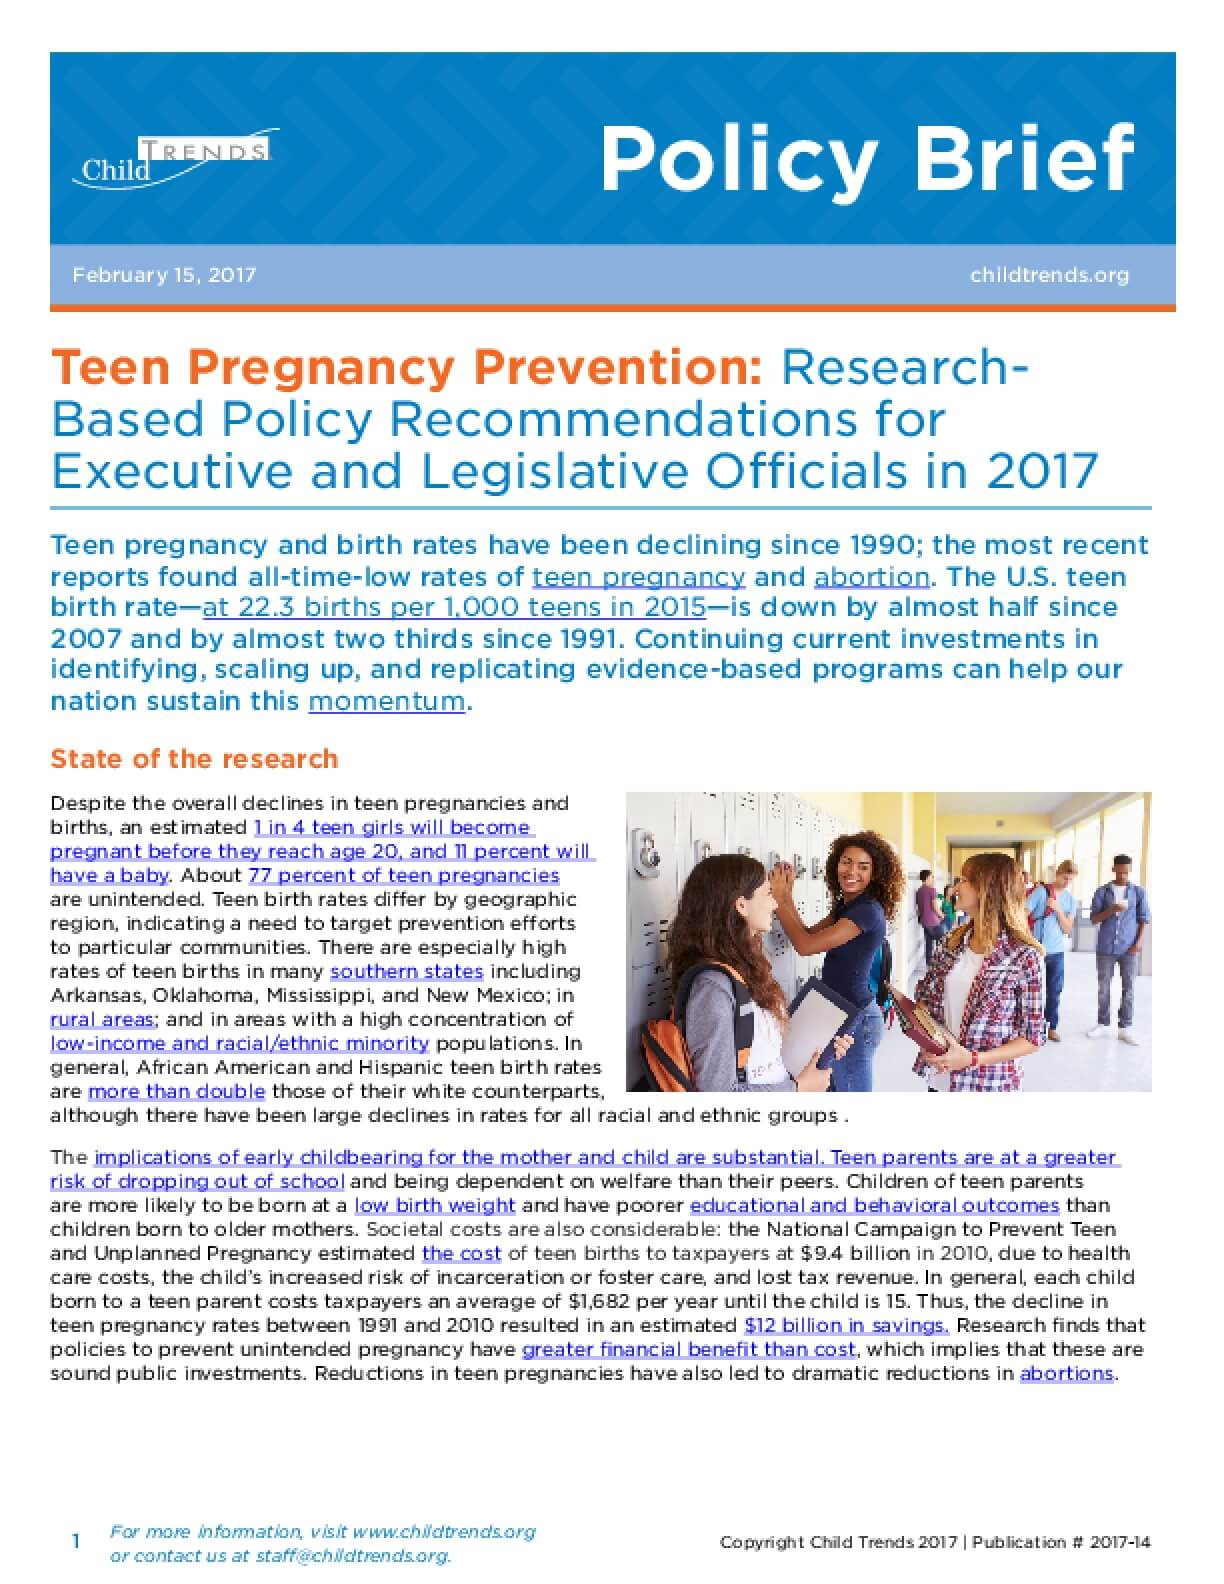 Teen Pregnancy Prevention: Research-Based Policy Recommendations for Executive and Legislative Officials in 2017